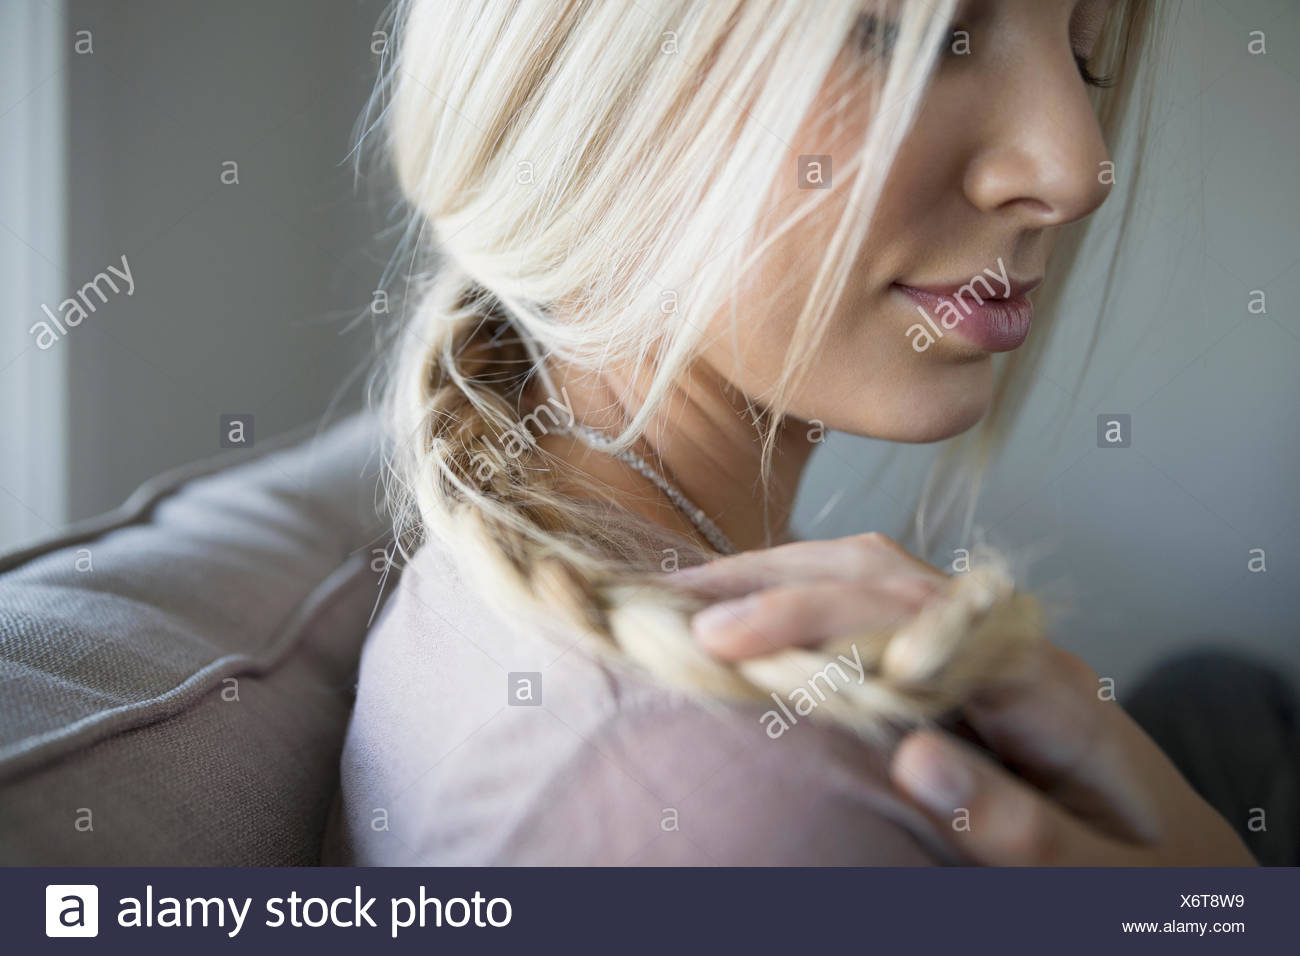 Close up blonde young woman holding braid - Stock Image